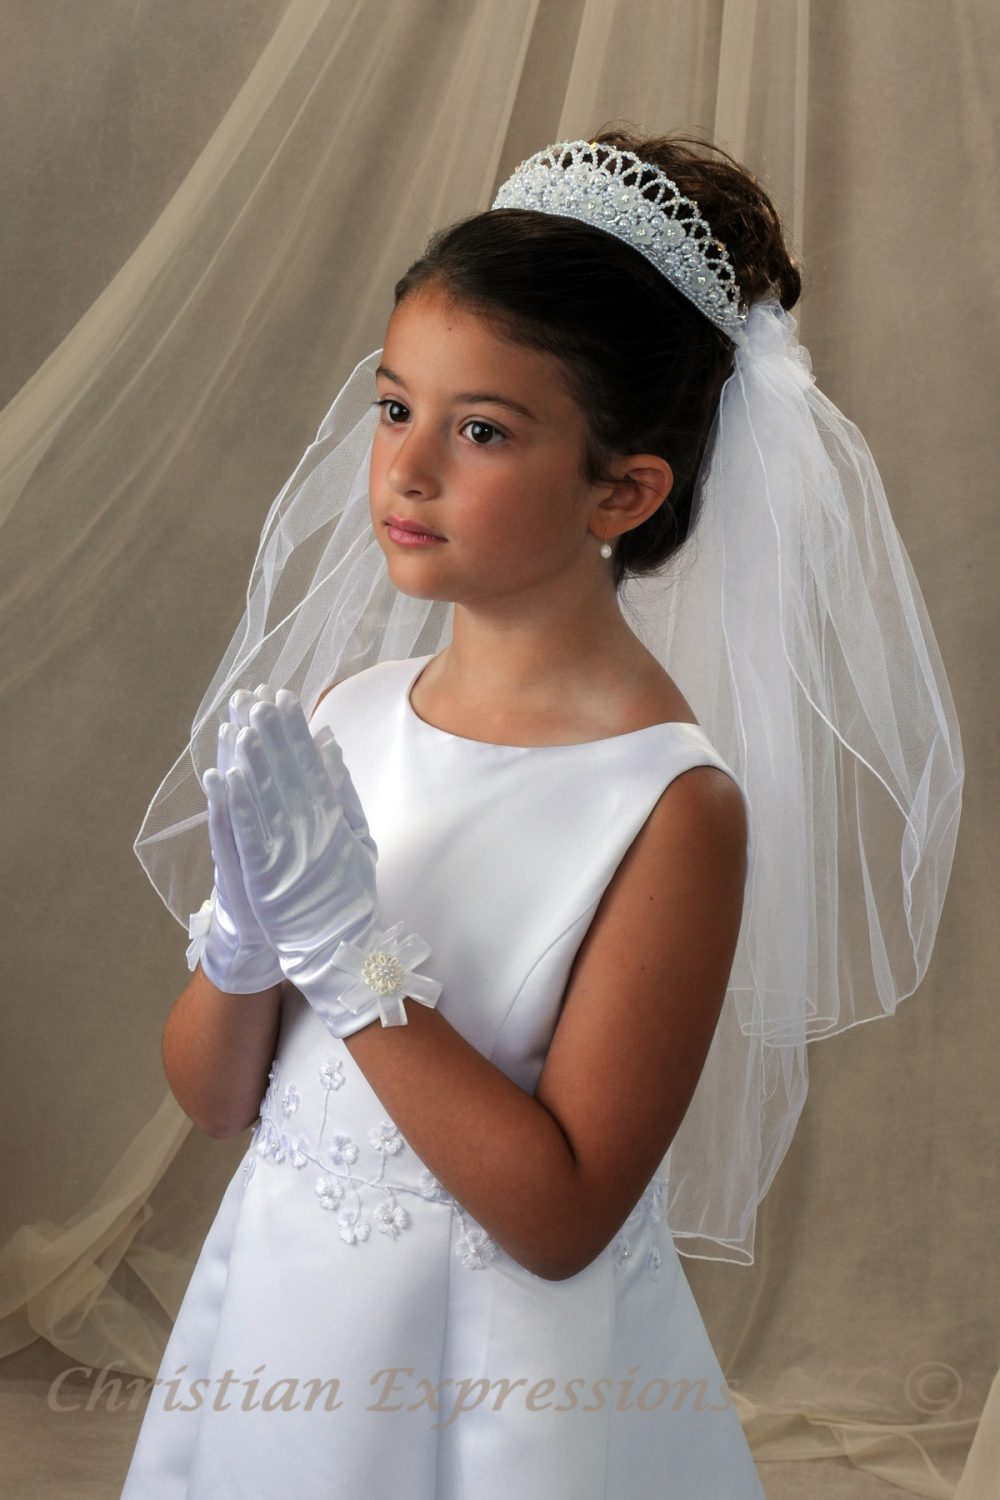 First Communion Pearl Crown Headpiece and Veil